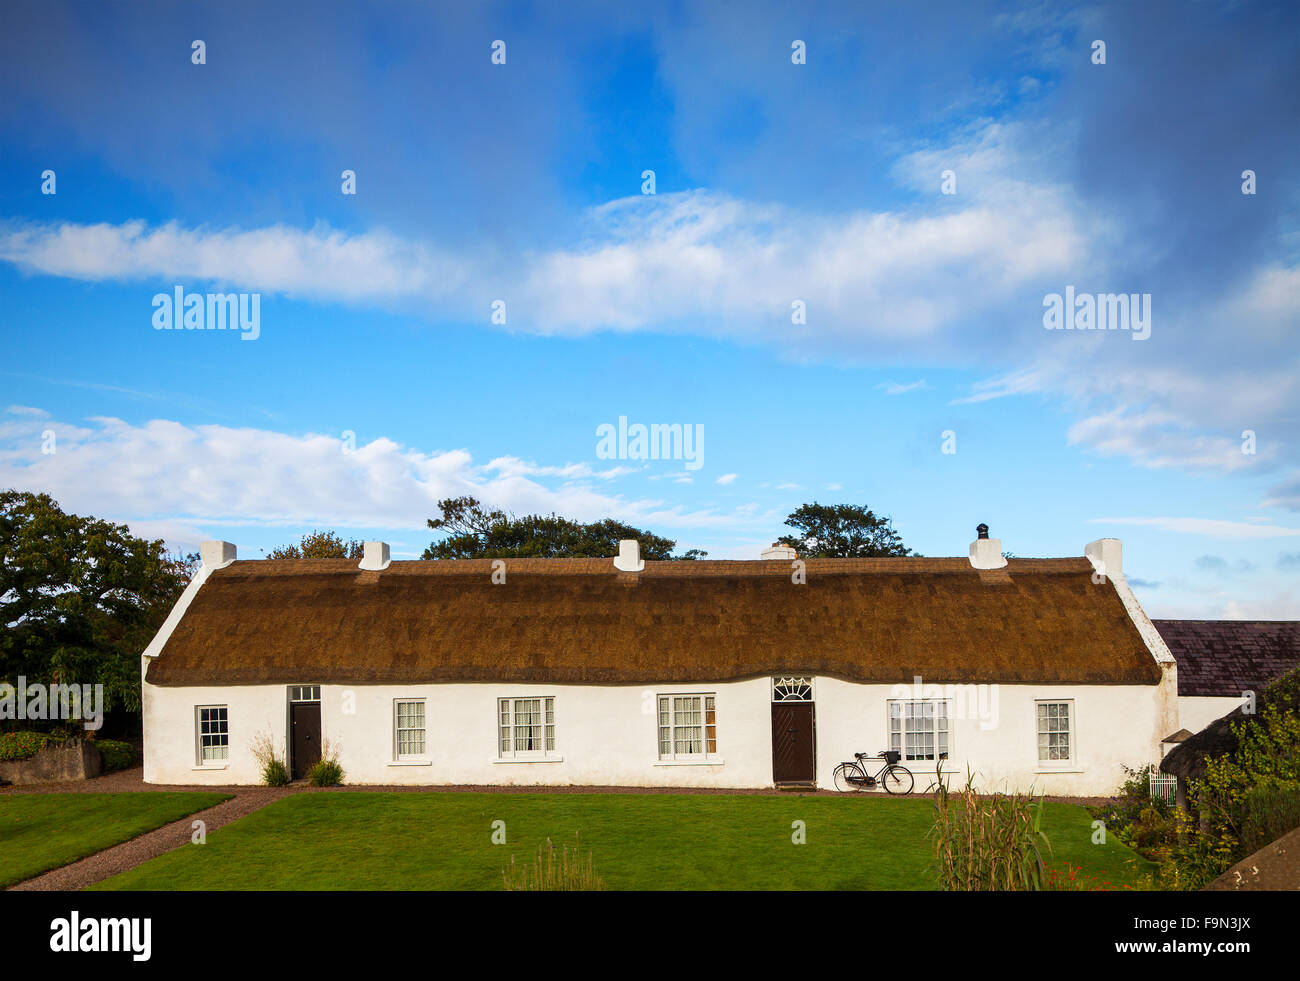 Hezlett's picturesque thatched cottage dating from 1690, Castlerock, County Derry or Londonderry, Northern Ireland - Stock Image